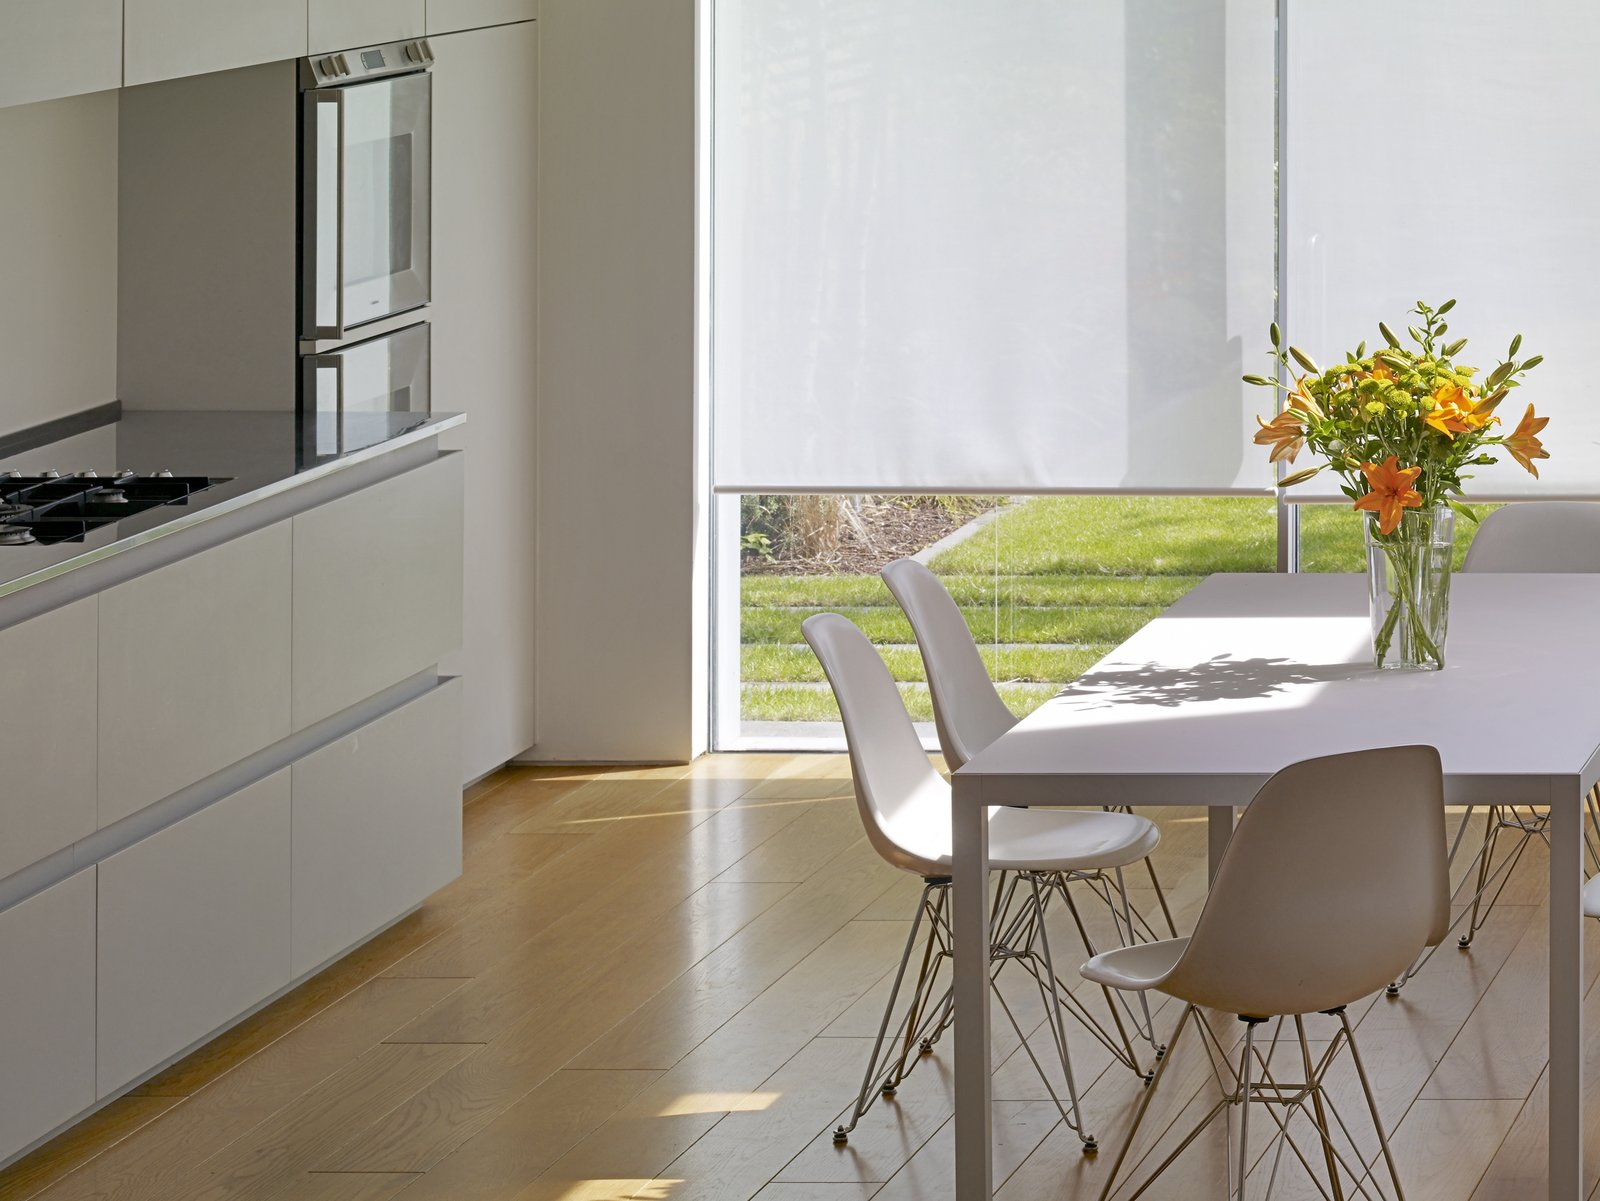 Tagged: Light Hardwood Floor, White Cabinet, Dining Room, Table, and Chair.  Elm Grove by Thompson + Baroni